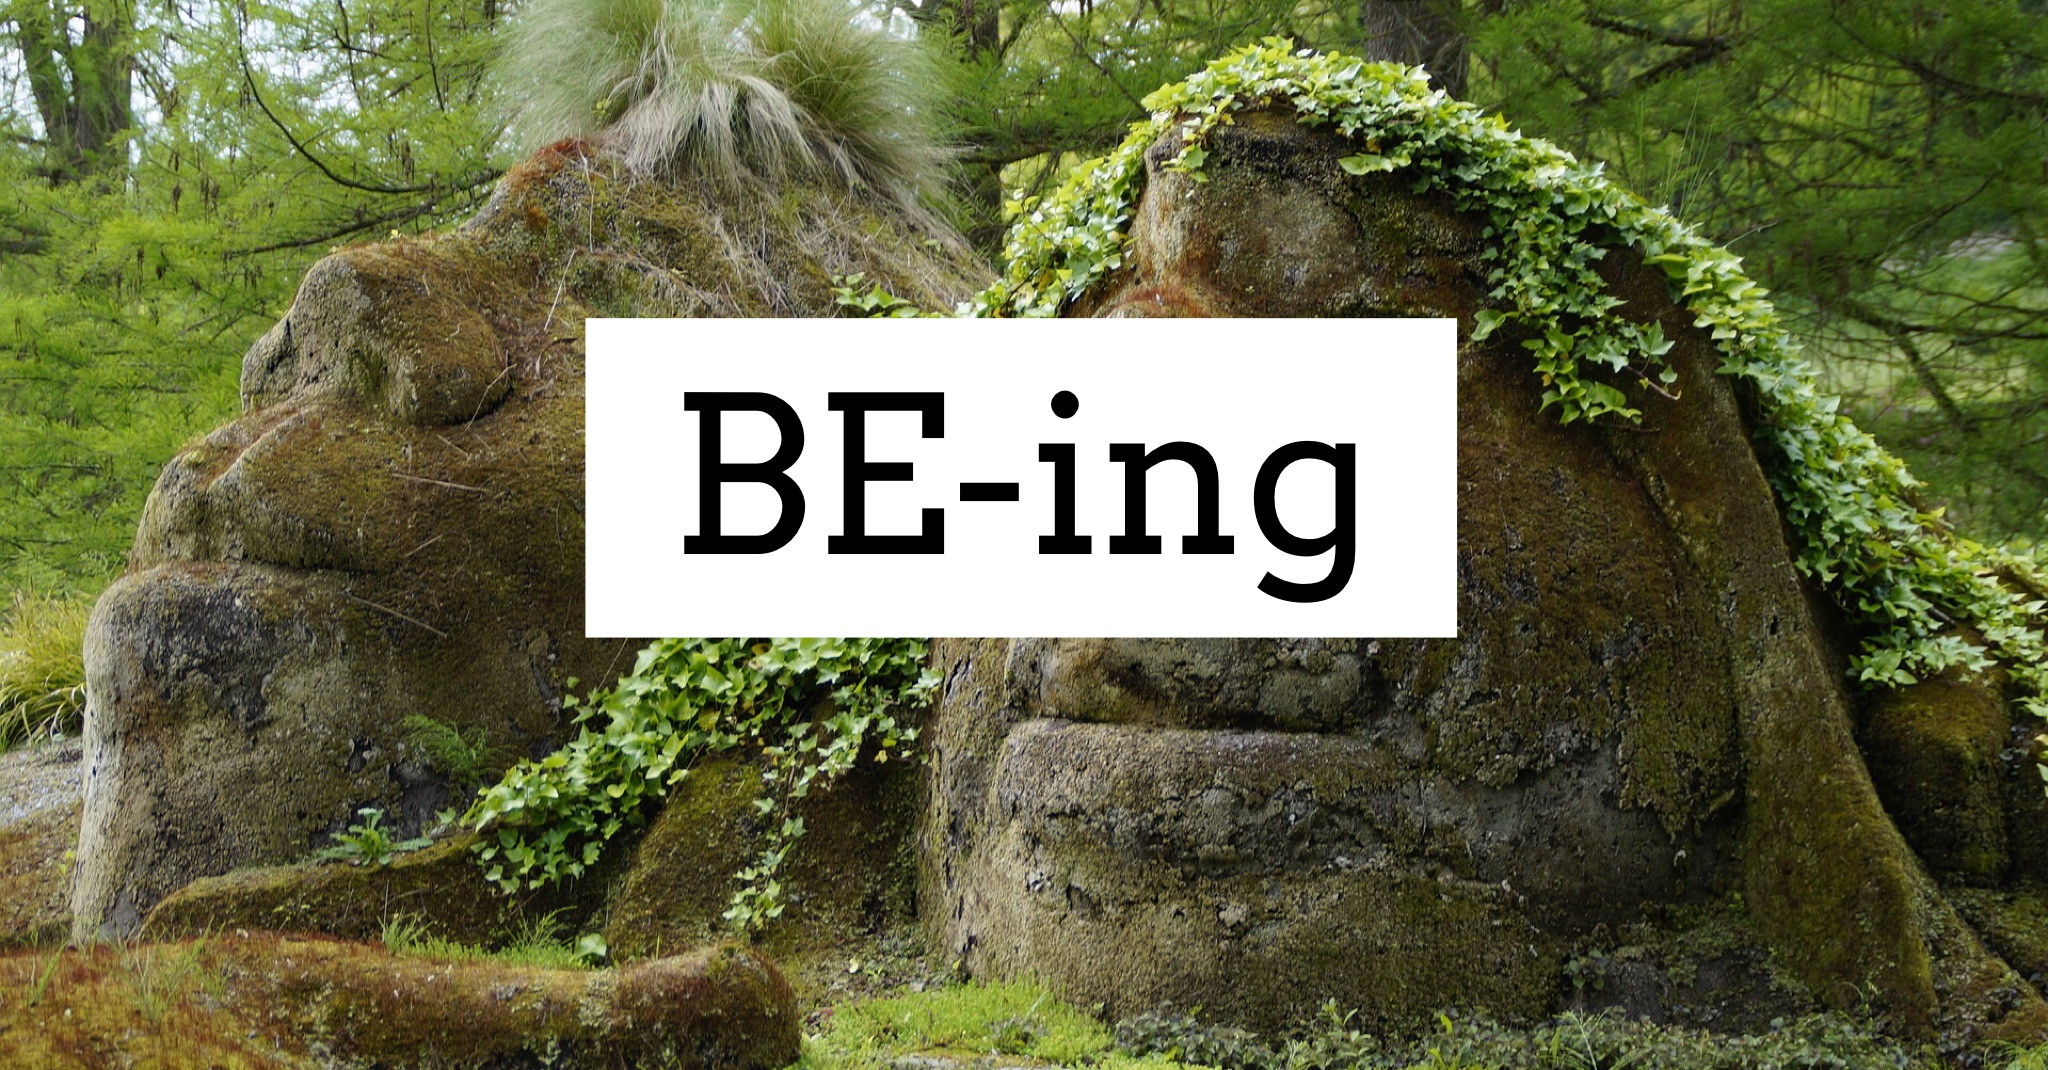 Be-ing: An Experience in Presence